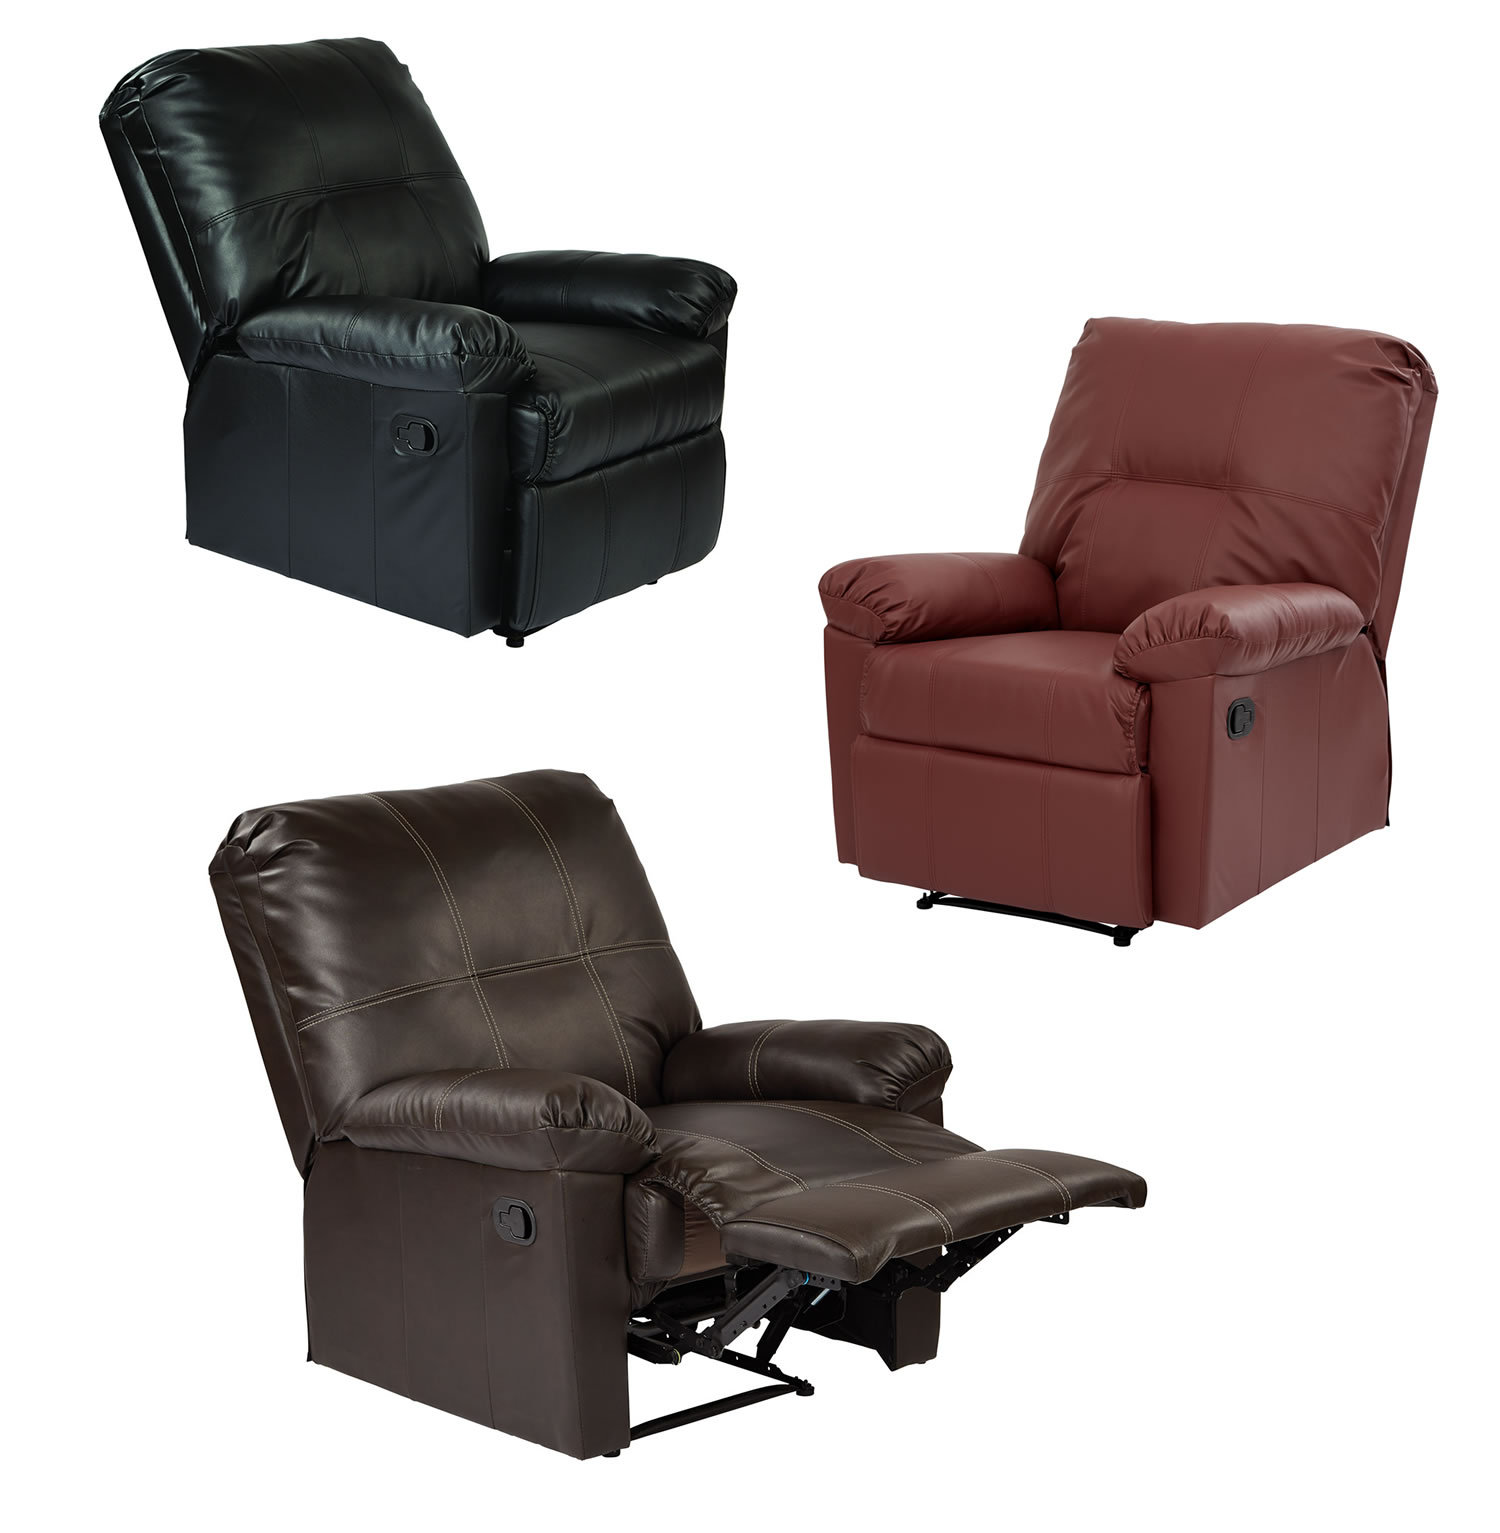 kensington leather chair rubber feet for metal legs eco recliner living room lounge club